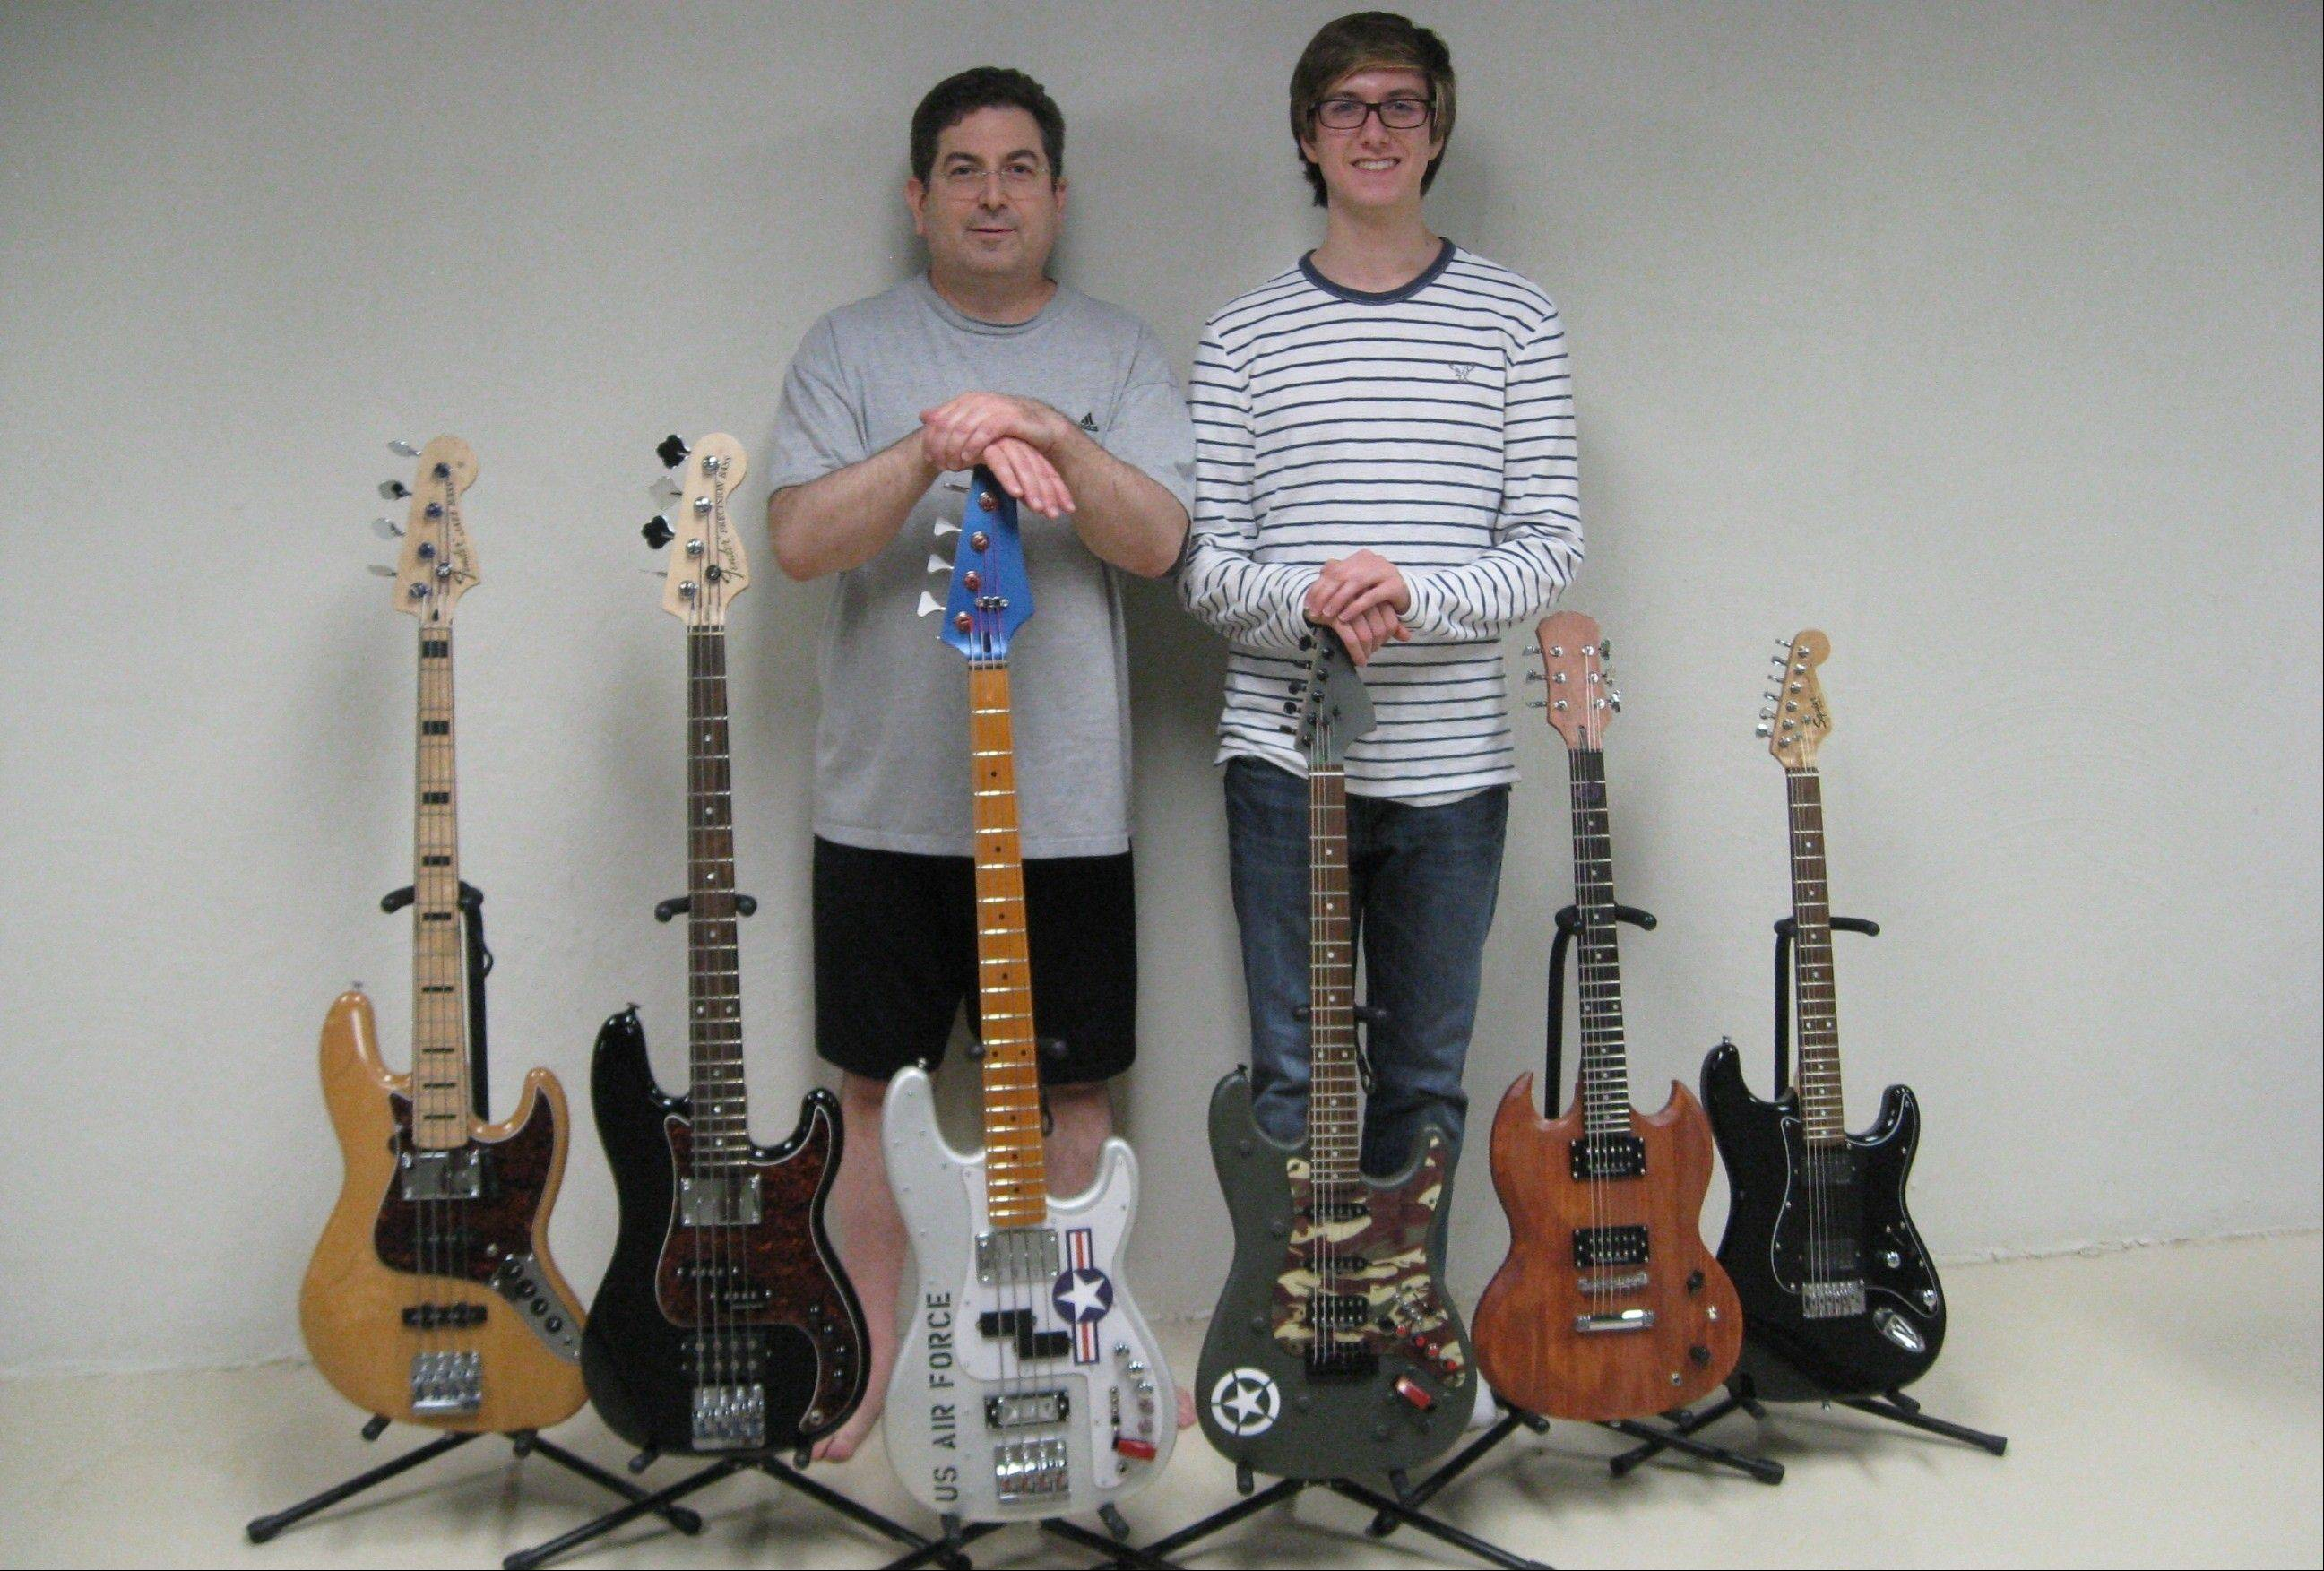 After Richard Doner, right, bought his first electric guitar, CPA Steve Doner jumped onboard the musical bandwagon. Now, the Wheaton father and son craft elaborate, custom guitars, which they donate to charity.